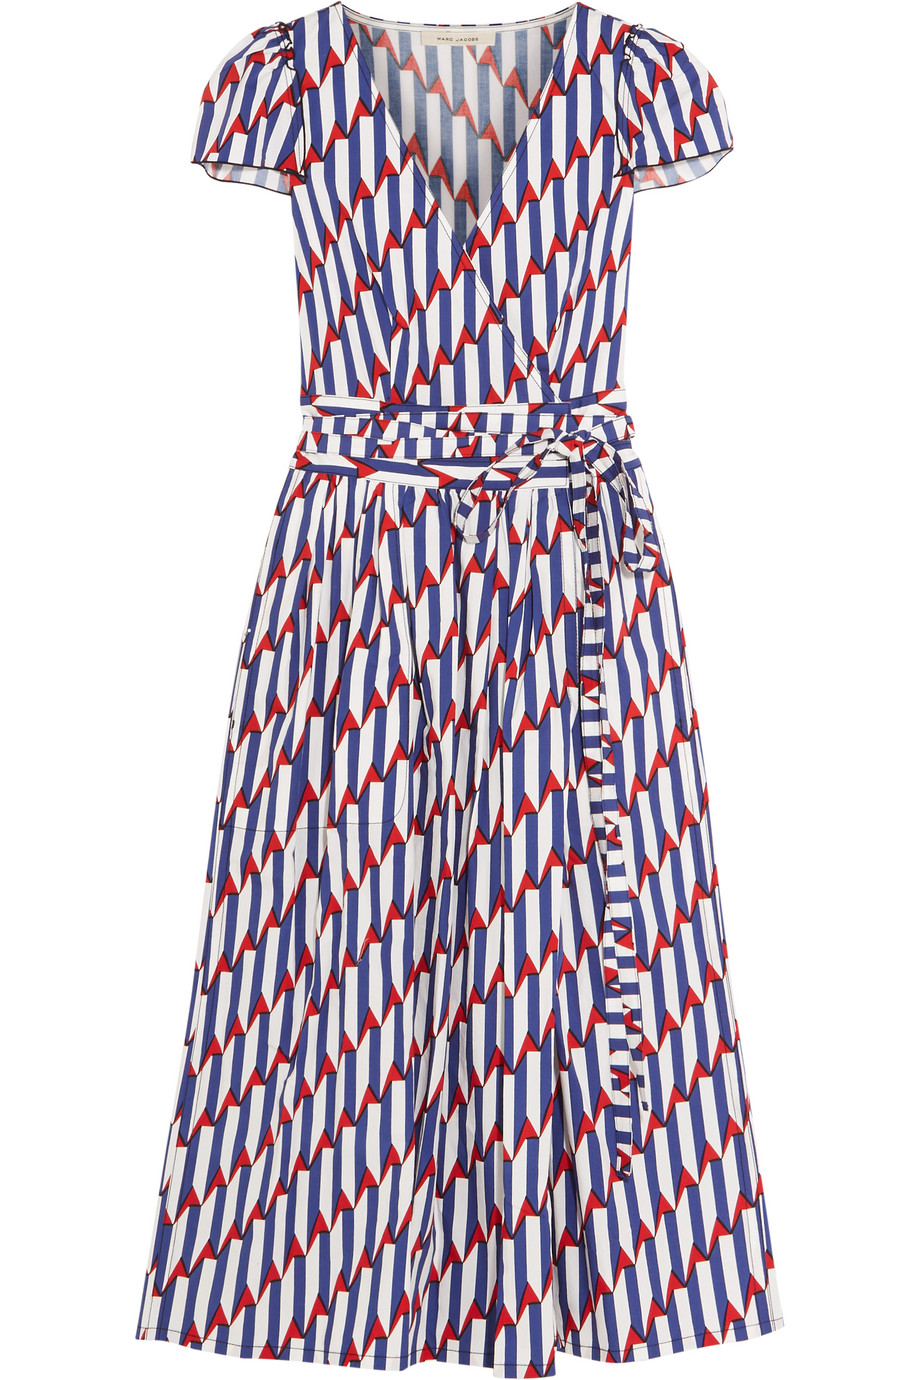 Marc Jacobs Printed Stretch-Cotton Poplin Wrap Dress, Royal Blue/Red, Women's - Printed, Size: 4